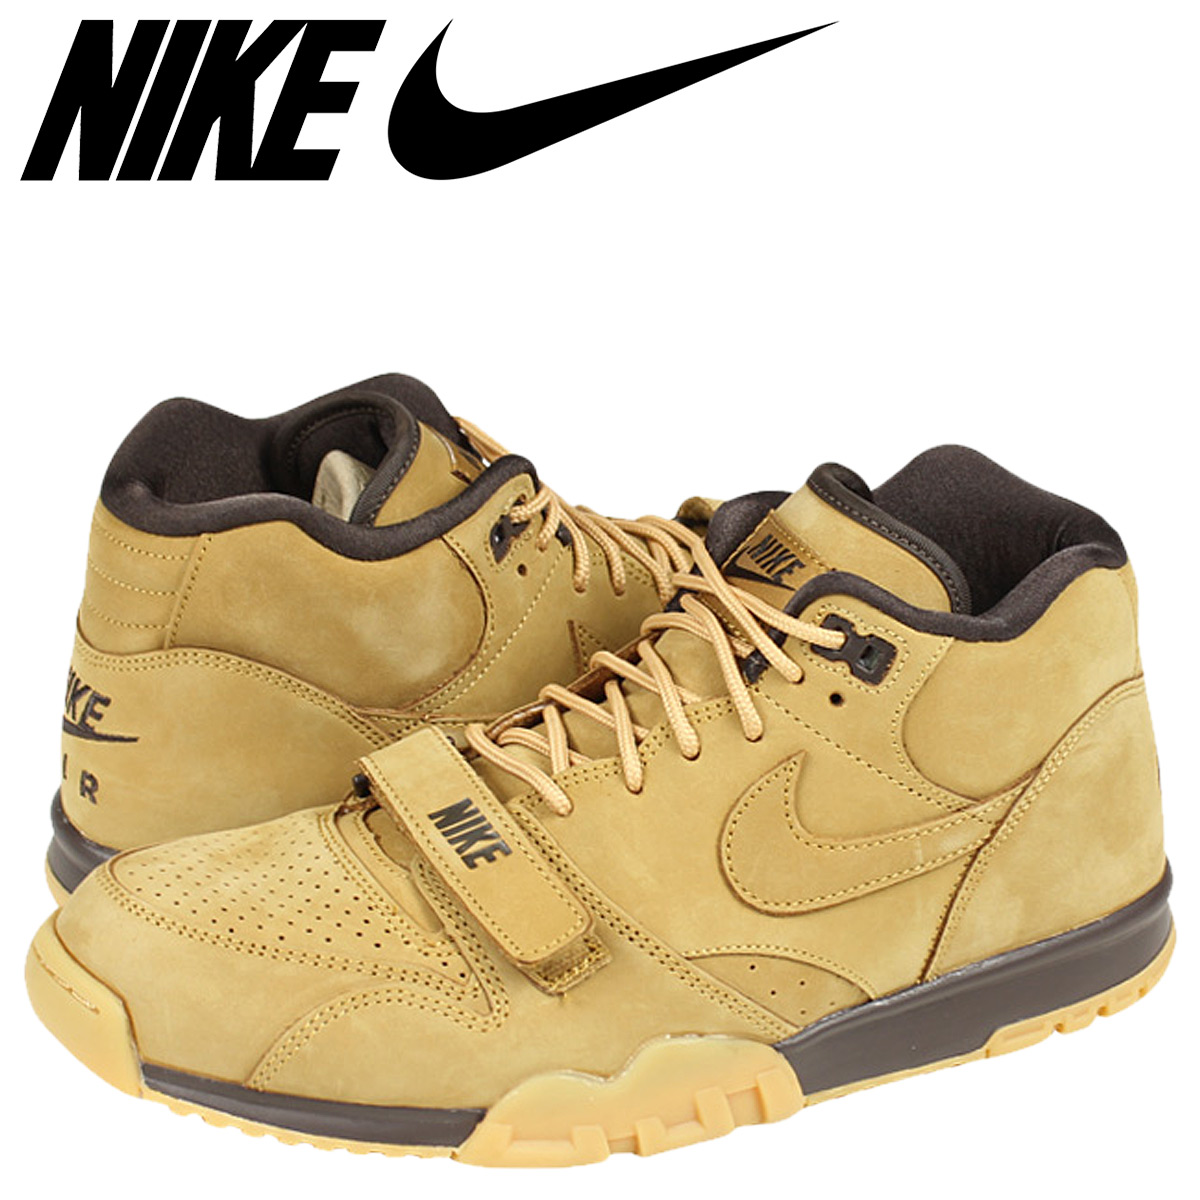 Nike 1 Flax Air Brown Men Sneakers Collection 081 Trainer 201 Prm Mid Qs 607 0k8nwOPX